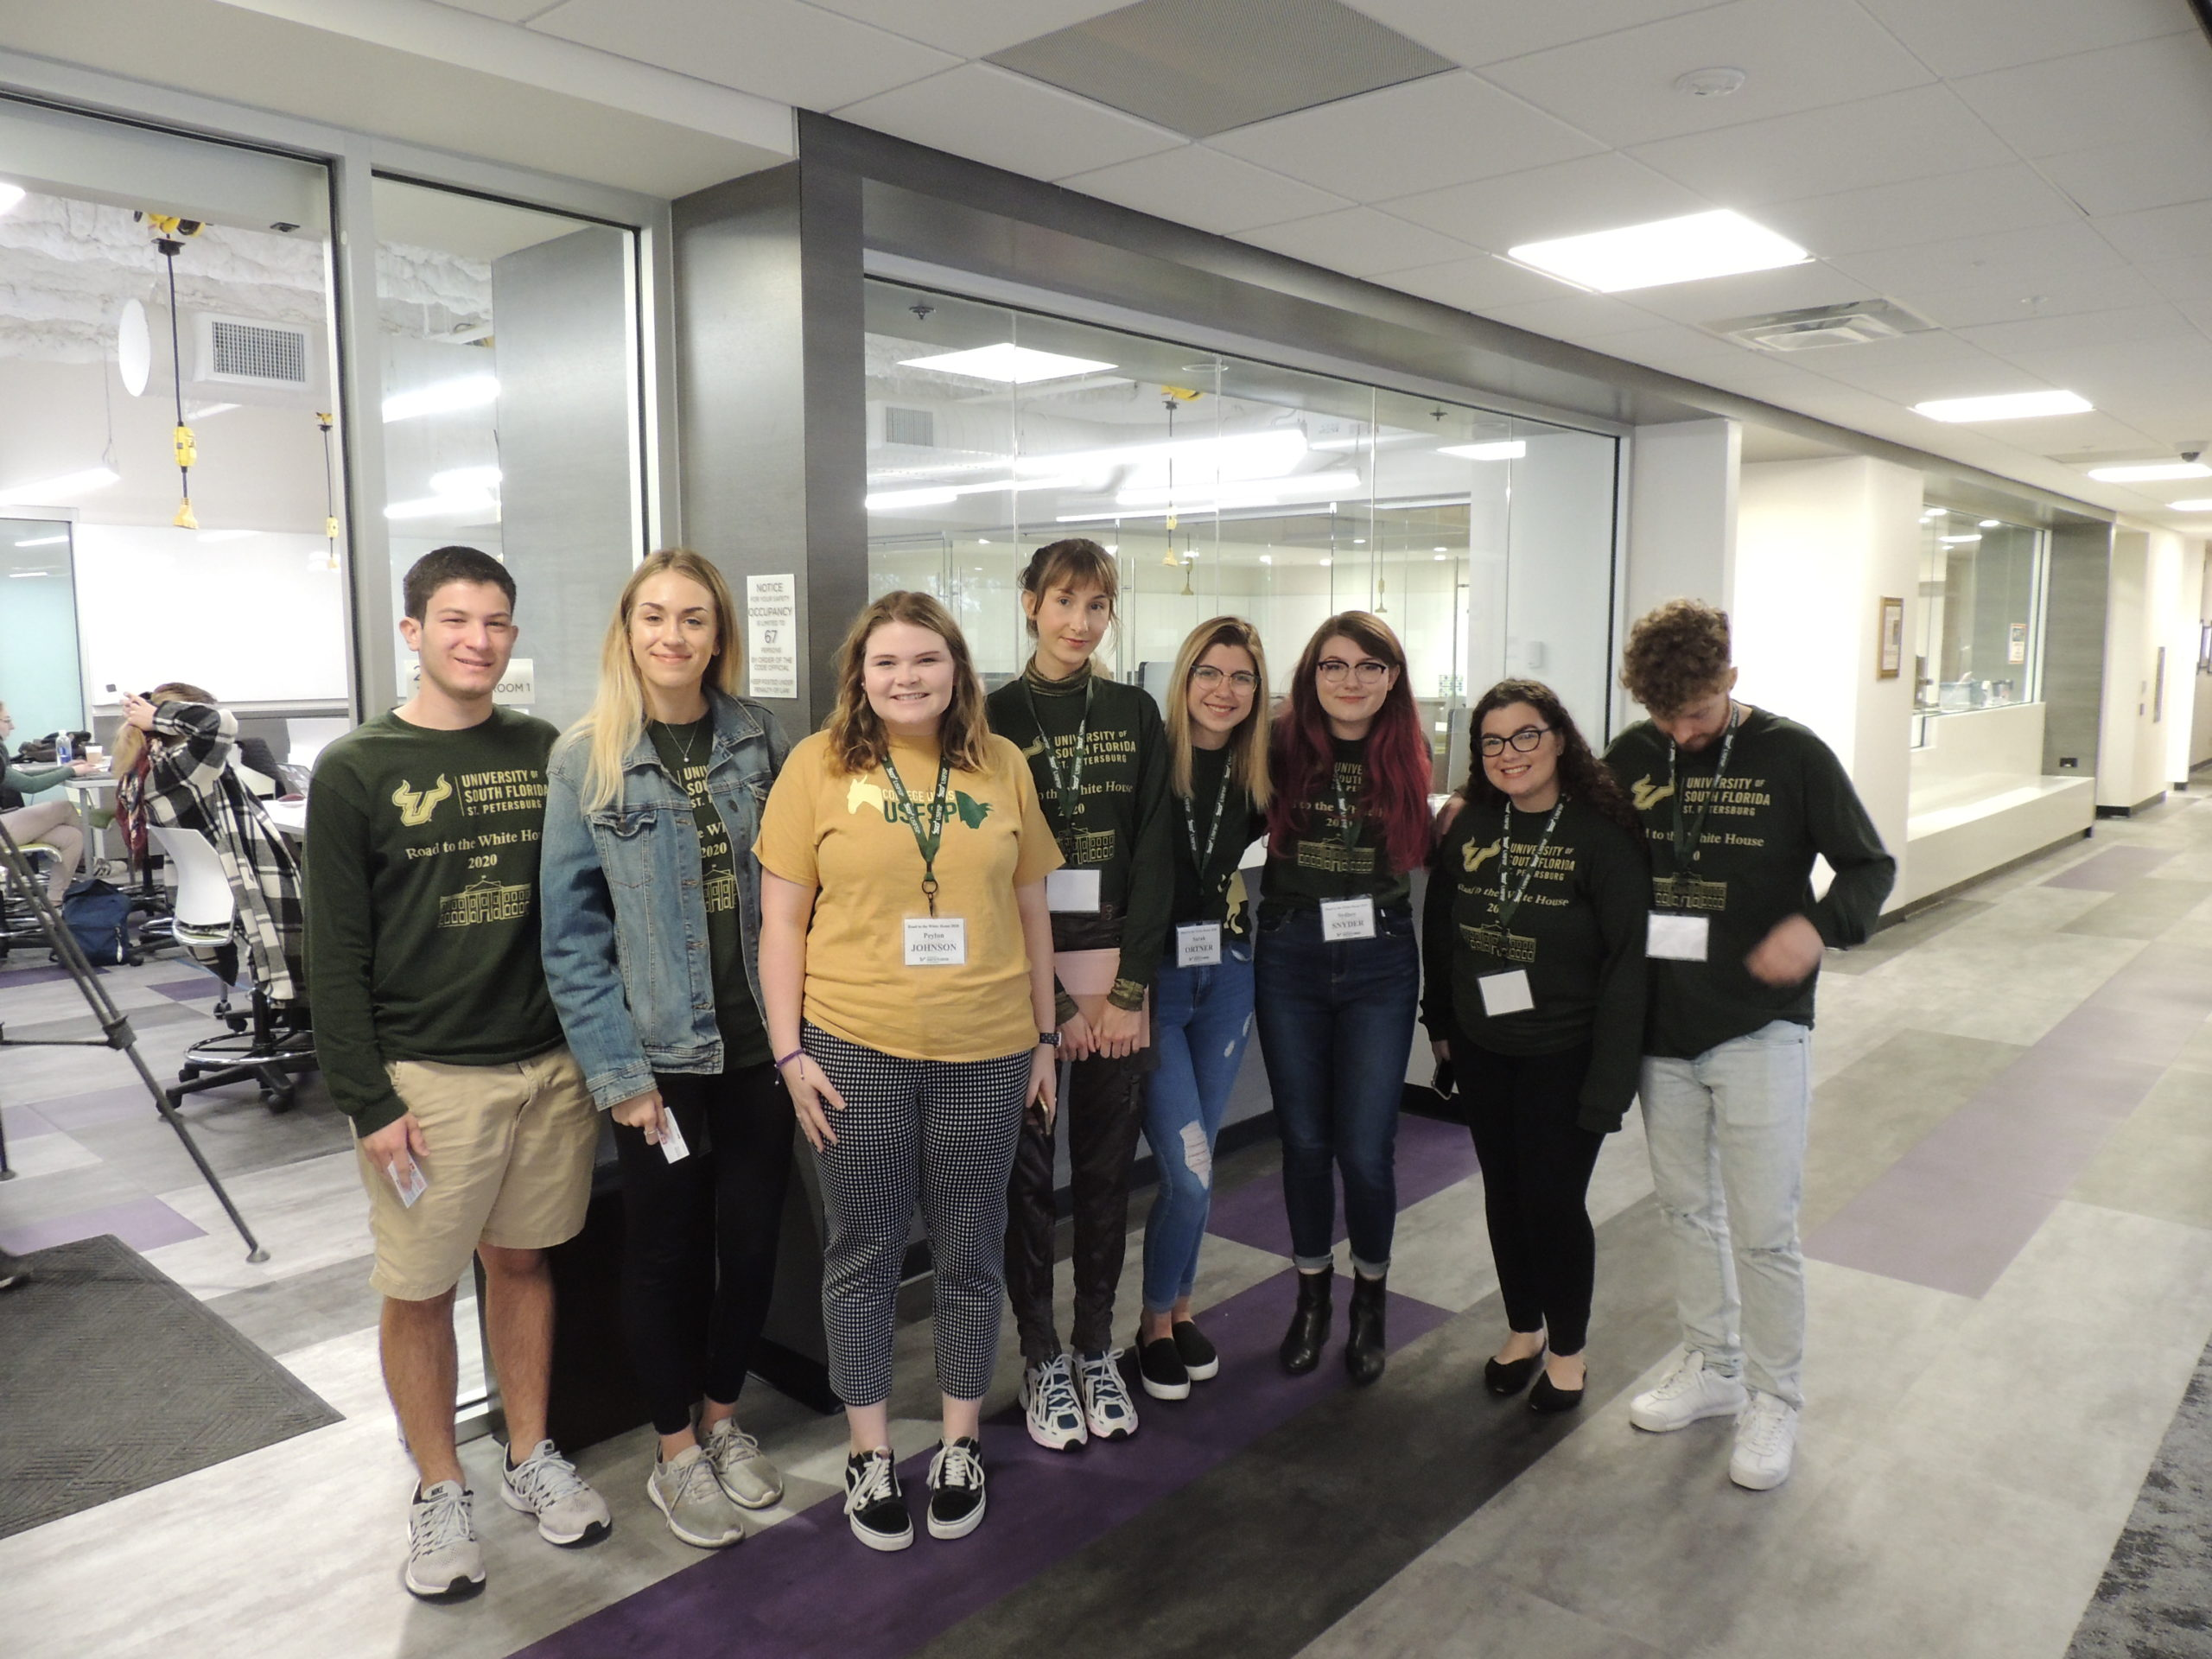 University of South Florida students work on 2020 election